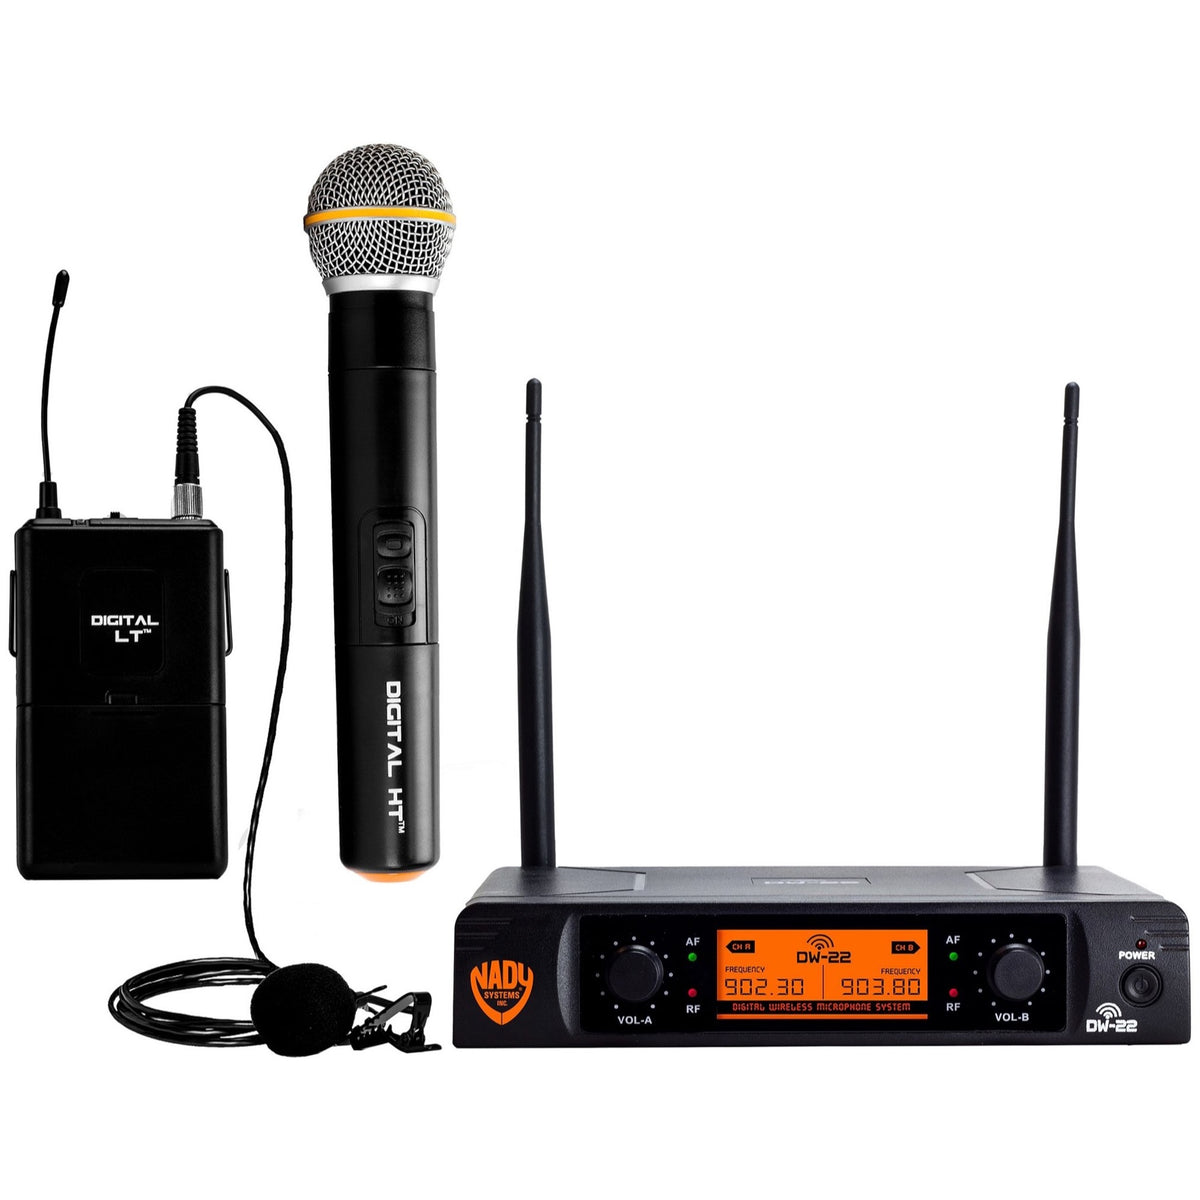 Nady DW-22 Dual Transmitter Digital Wireless Handheld and Lavalier Microphone Combination System, Channel D-13 and D-14